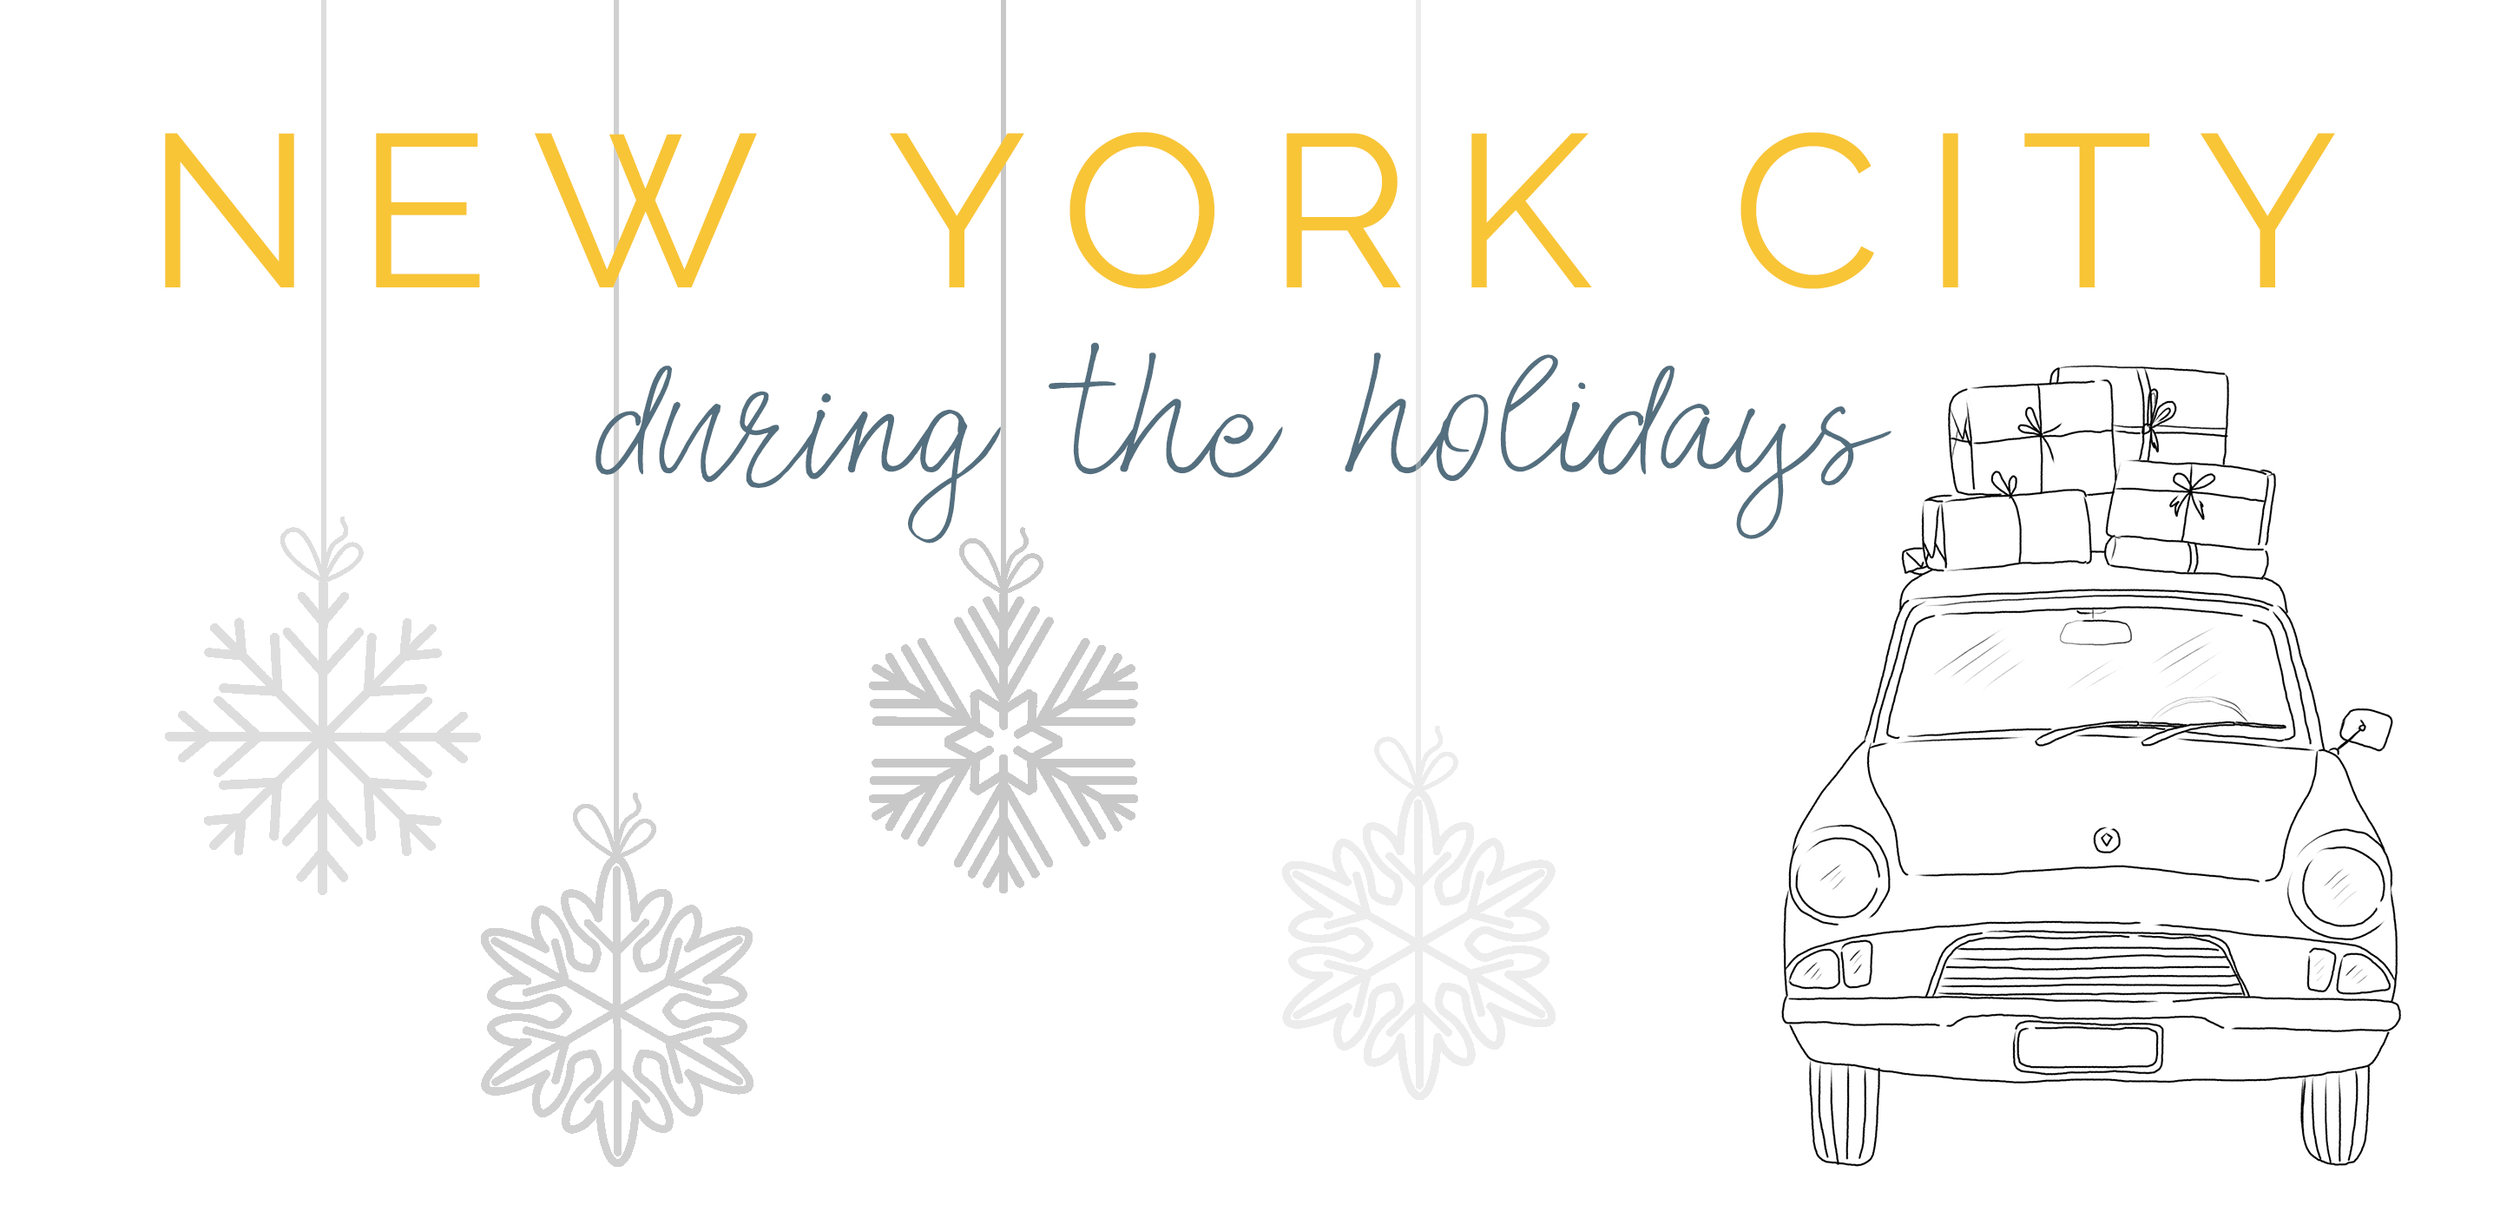 caitlin elizabeth james-new york city-holidays-things to do.jpg